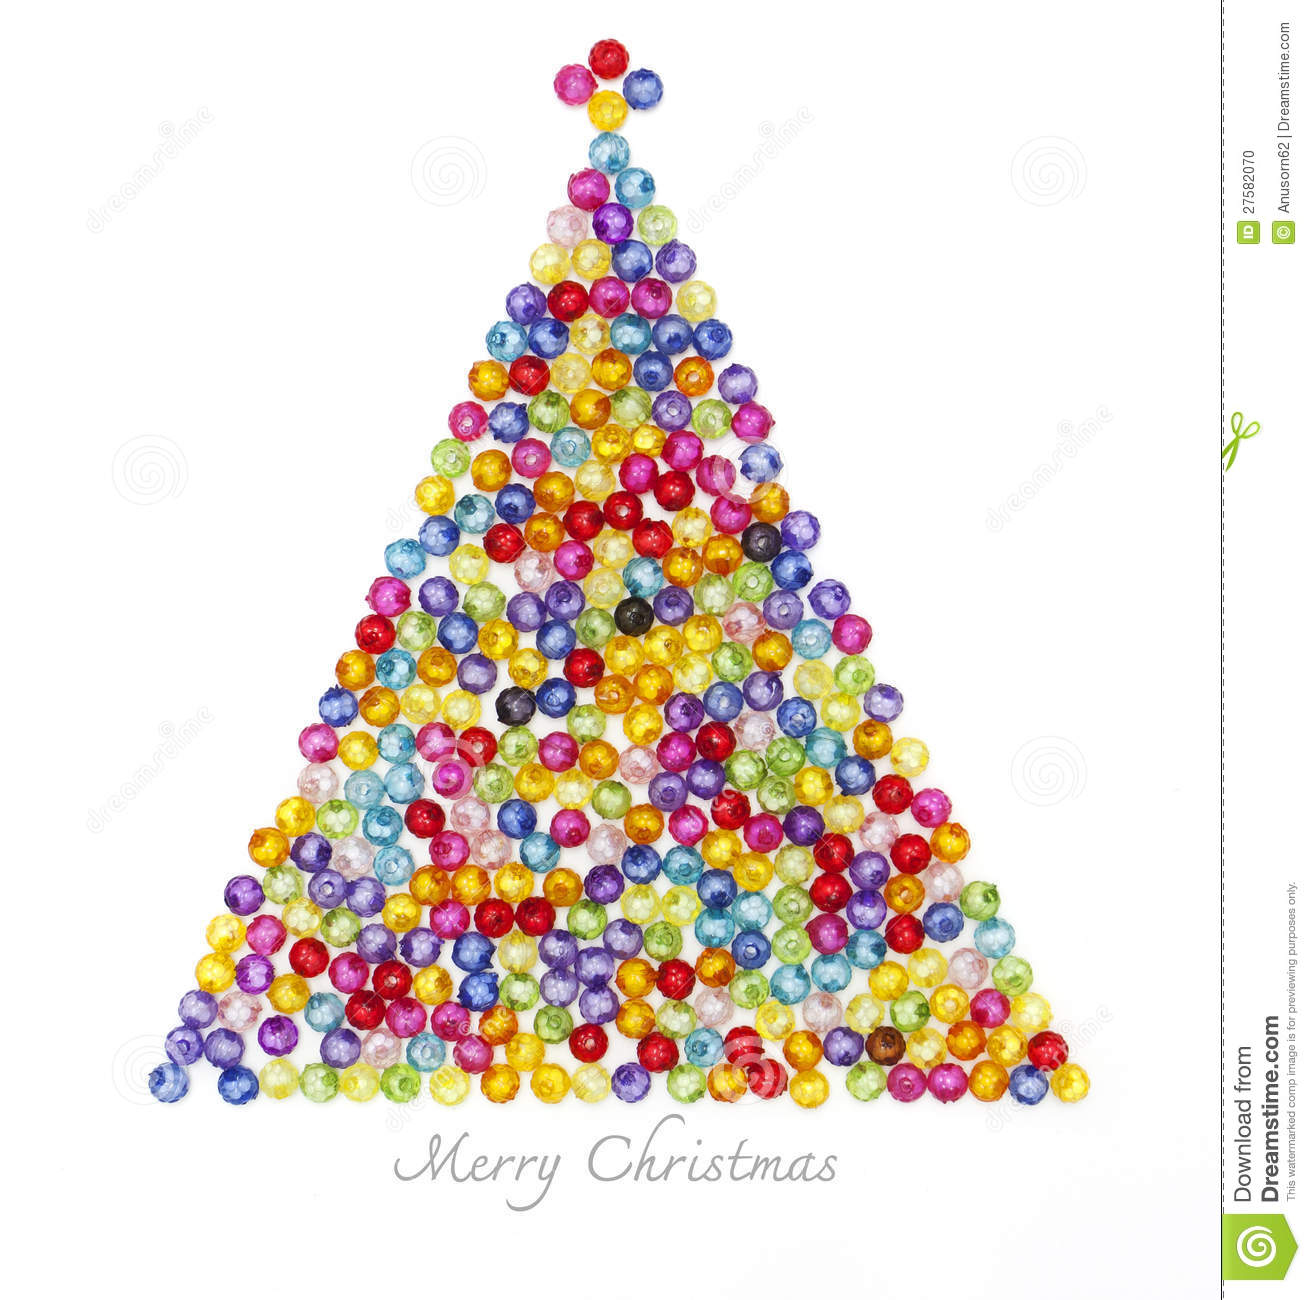 Decorate Christmas Tree With Beads: Christmas Tree Decorate By Colorful Beads Stock Photo